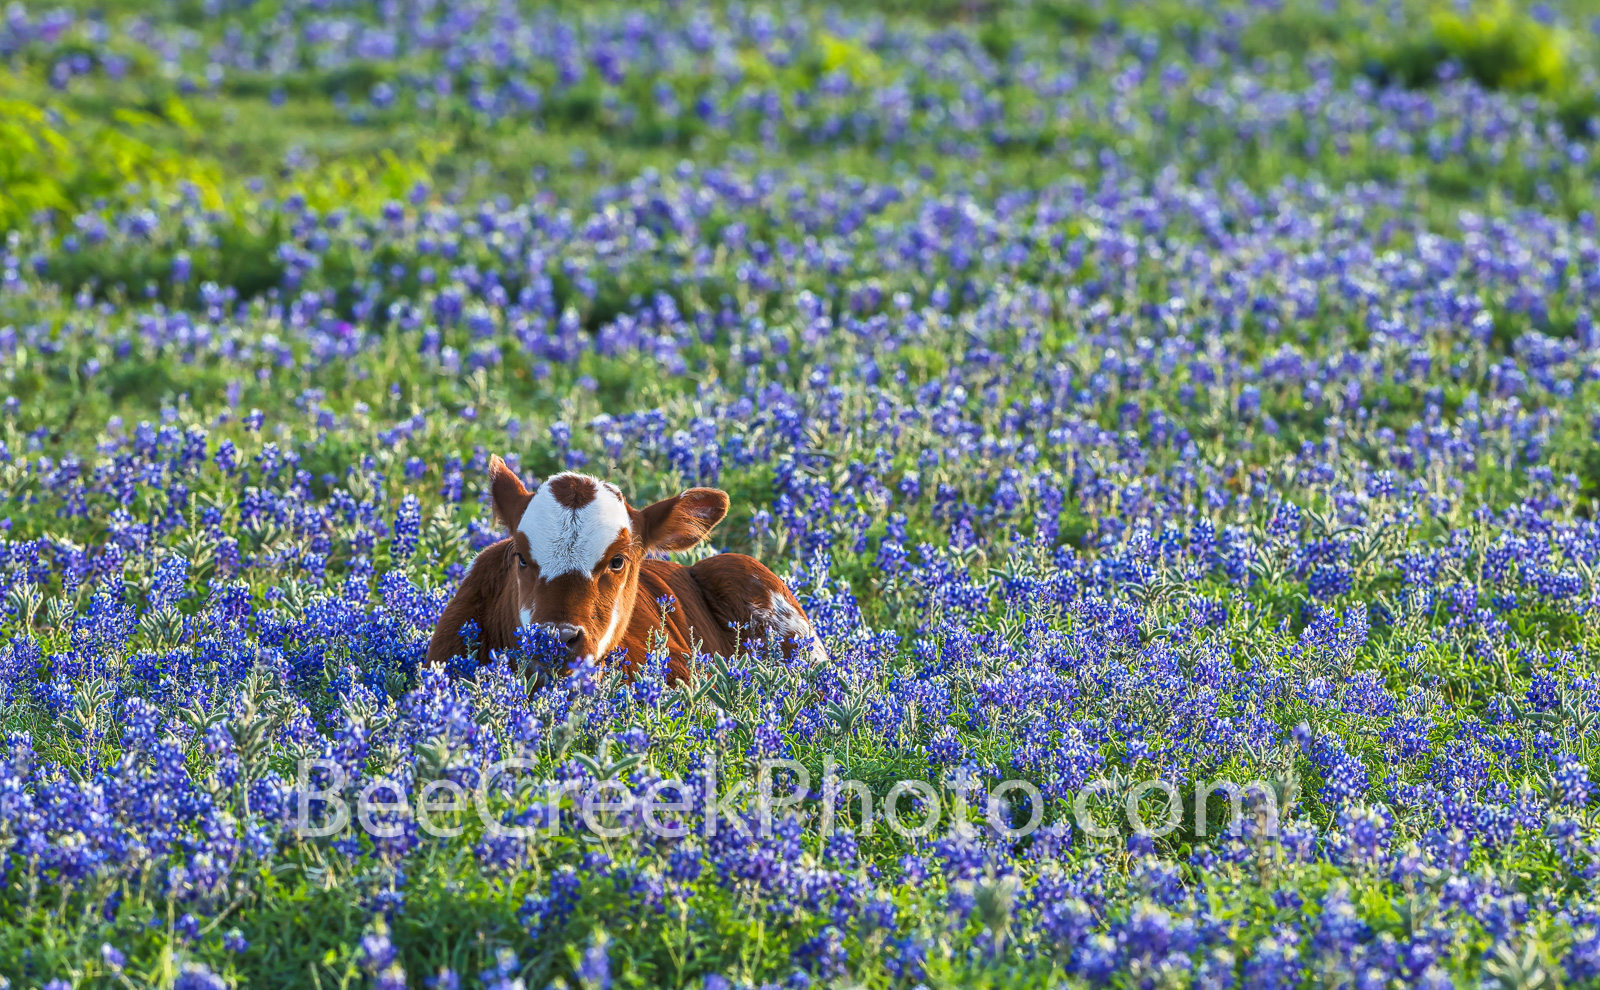 Longhorn calf, cattle, bluebonnets, texas bluebonnets,  Texas southwest, texas wildflowers, field, symbol, docil, baby, field of bluebonnets, texas, field of bluebonnets, , photo